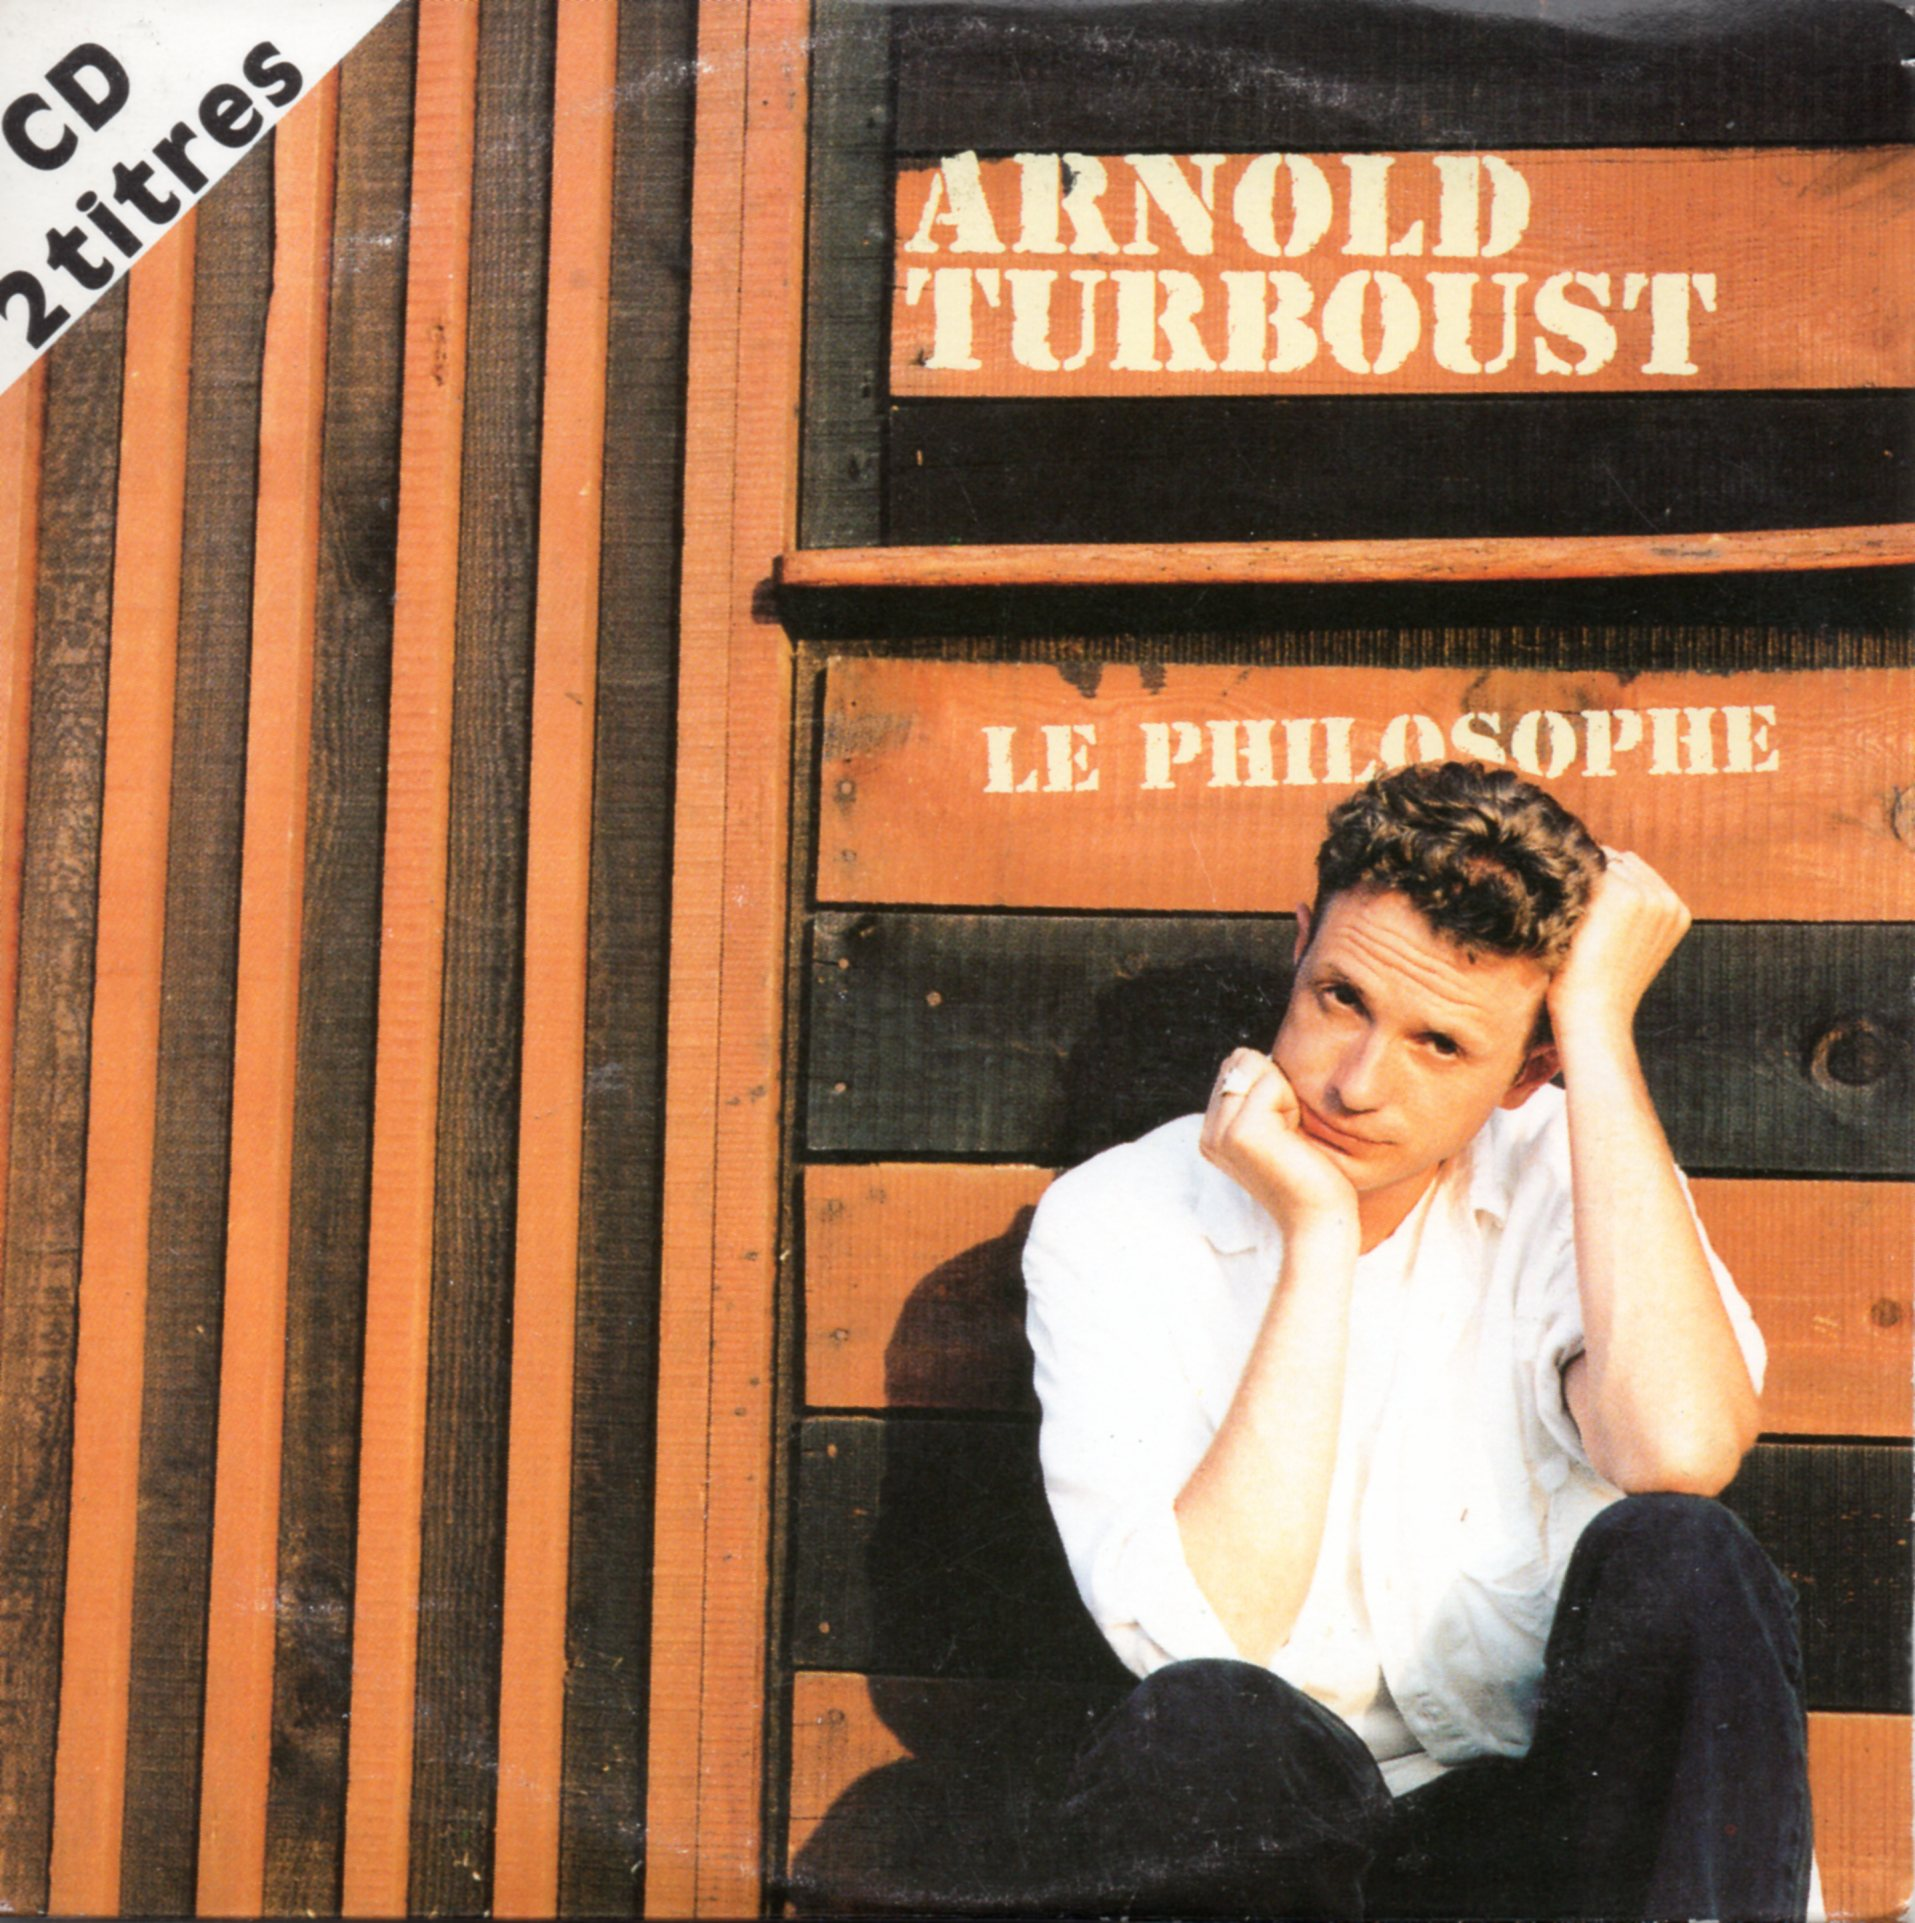 ARNOLD TURBOUST - Le philosophe 2-Track CARD SLEEVE - CD single